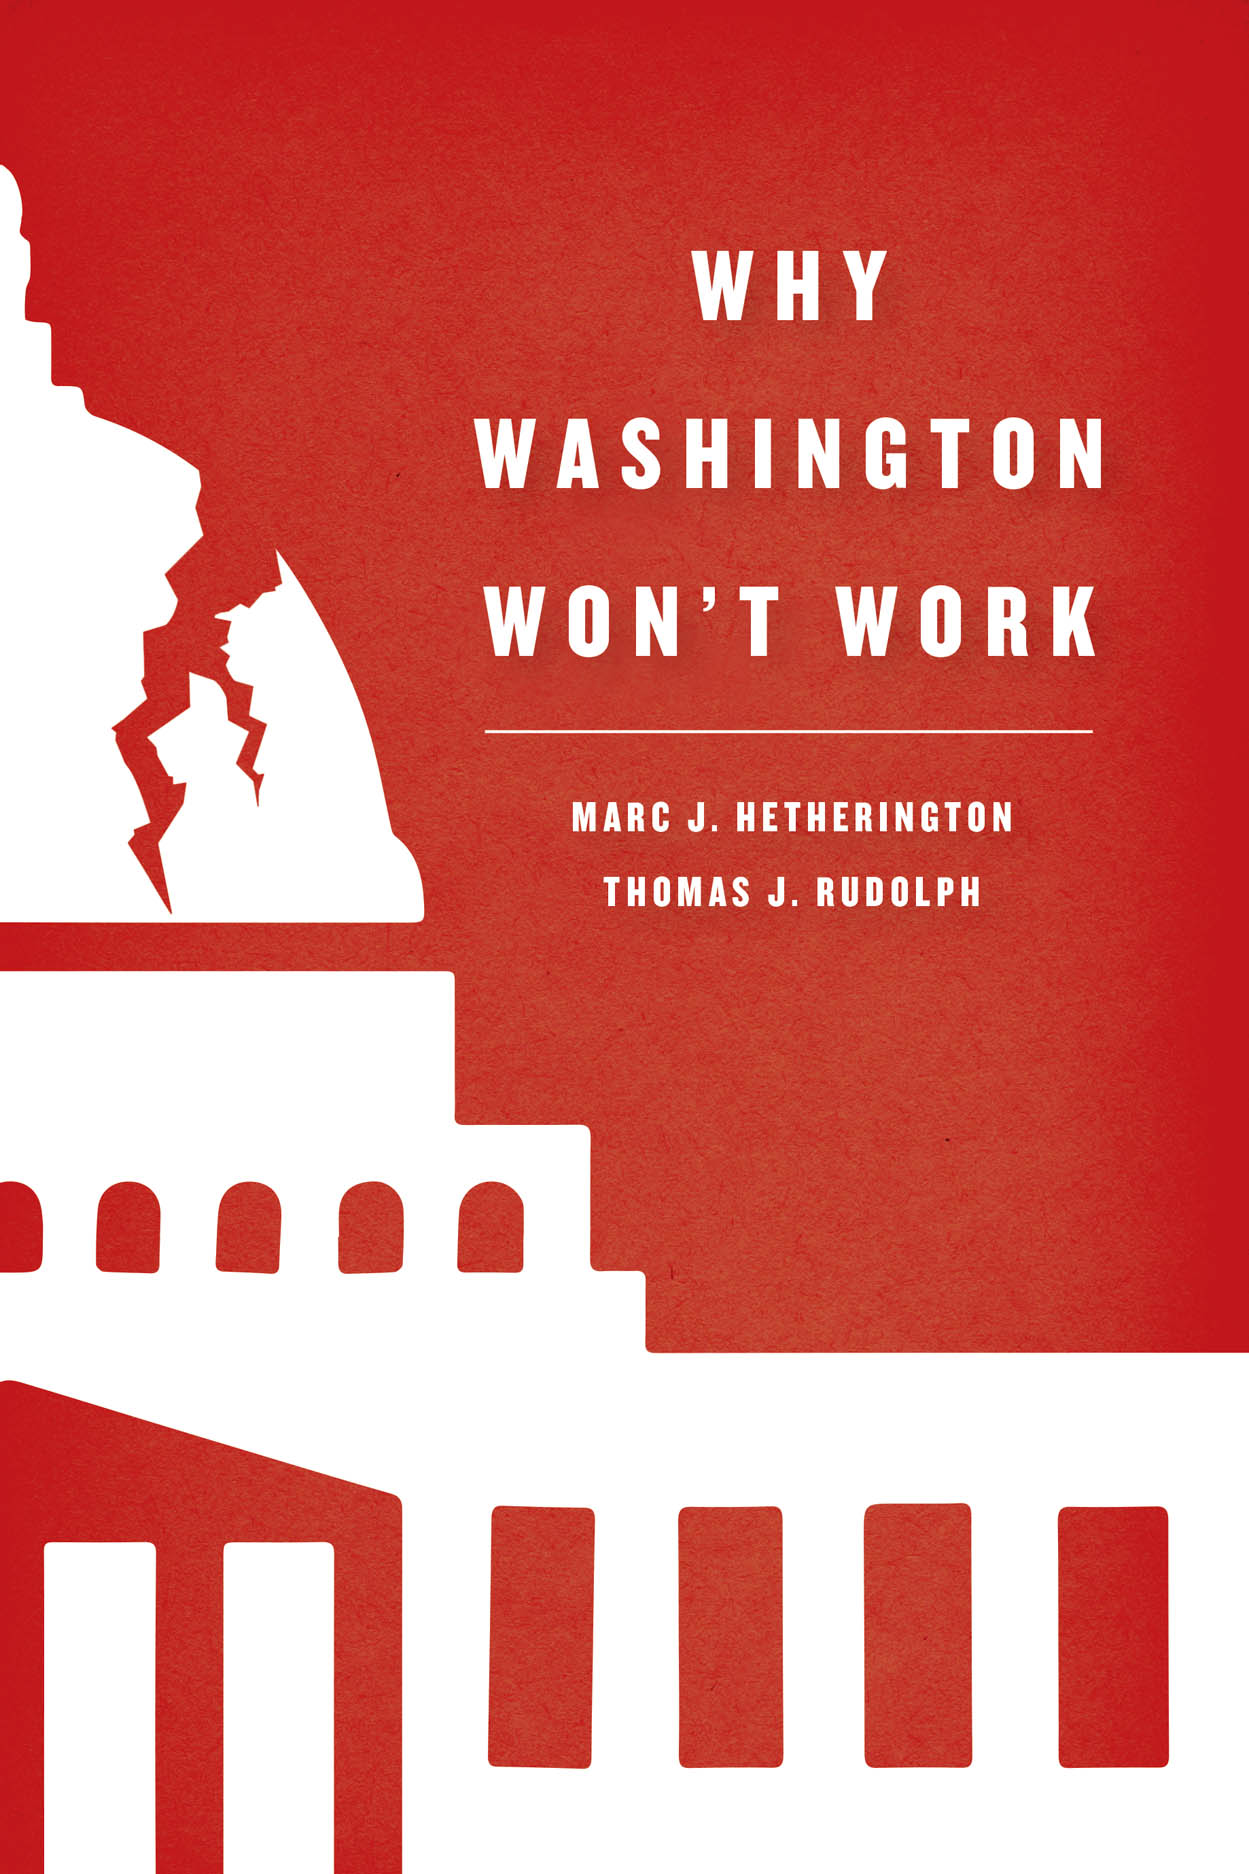 Why Washington Won't Work: Polarization, Political Trust, and the Governing Crisis